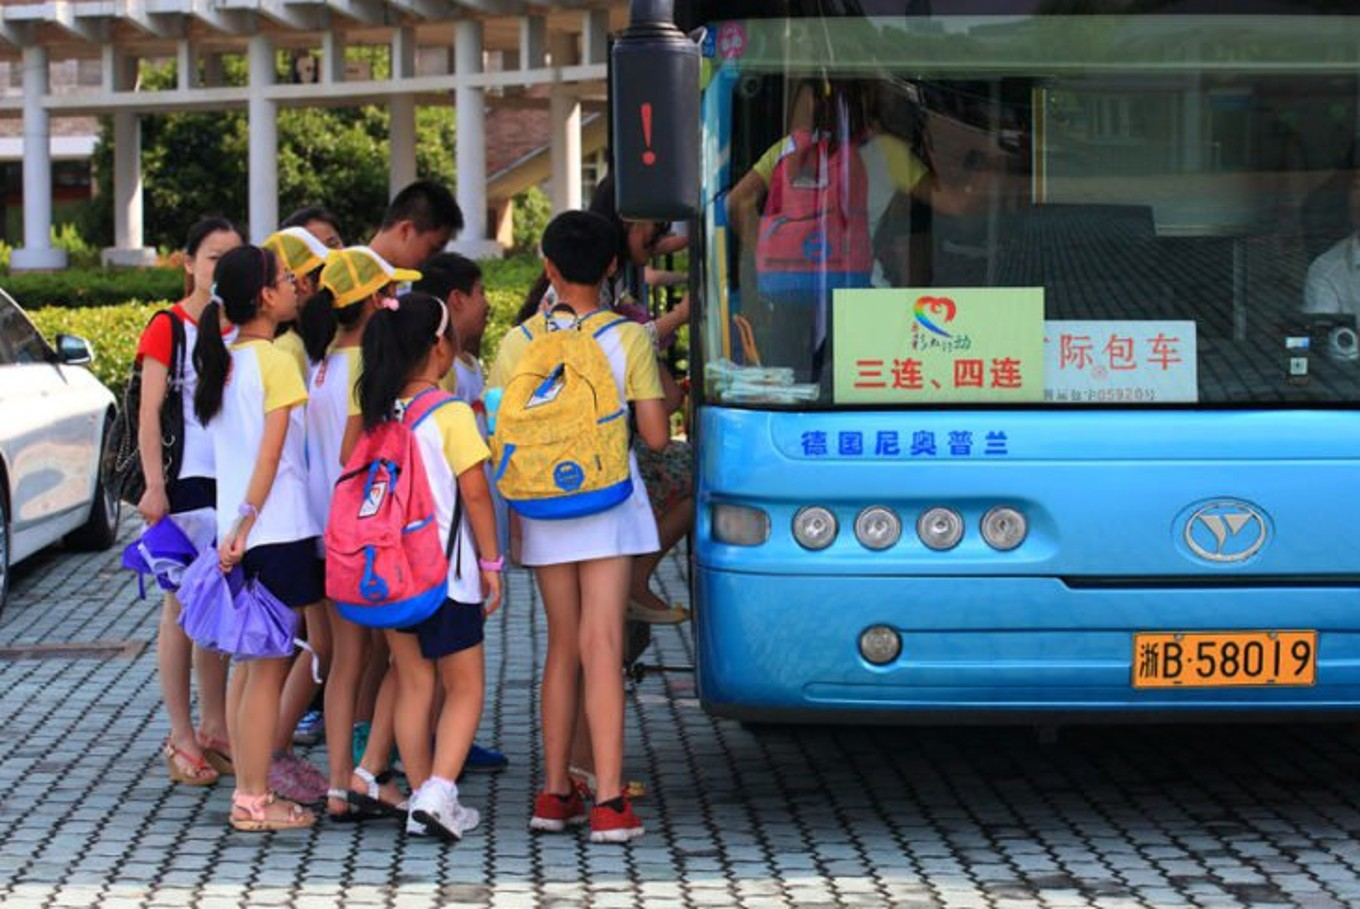 Smart bus with virtual tracks gets rolling in China